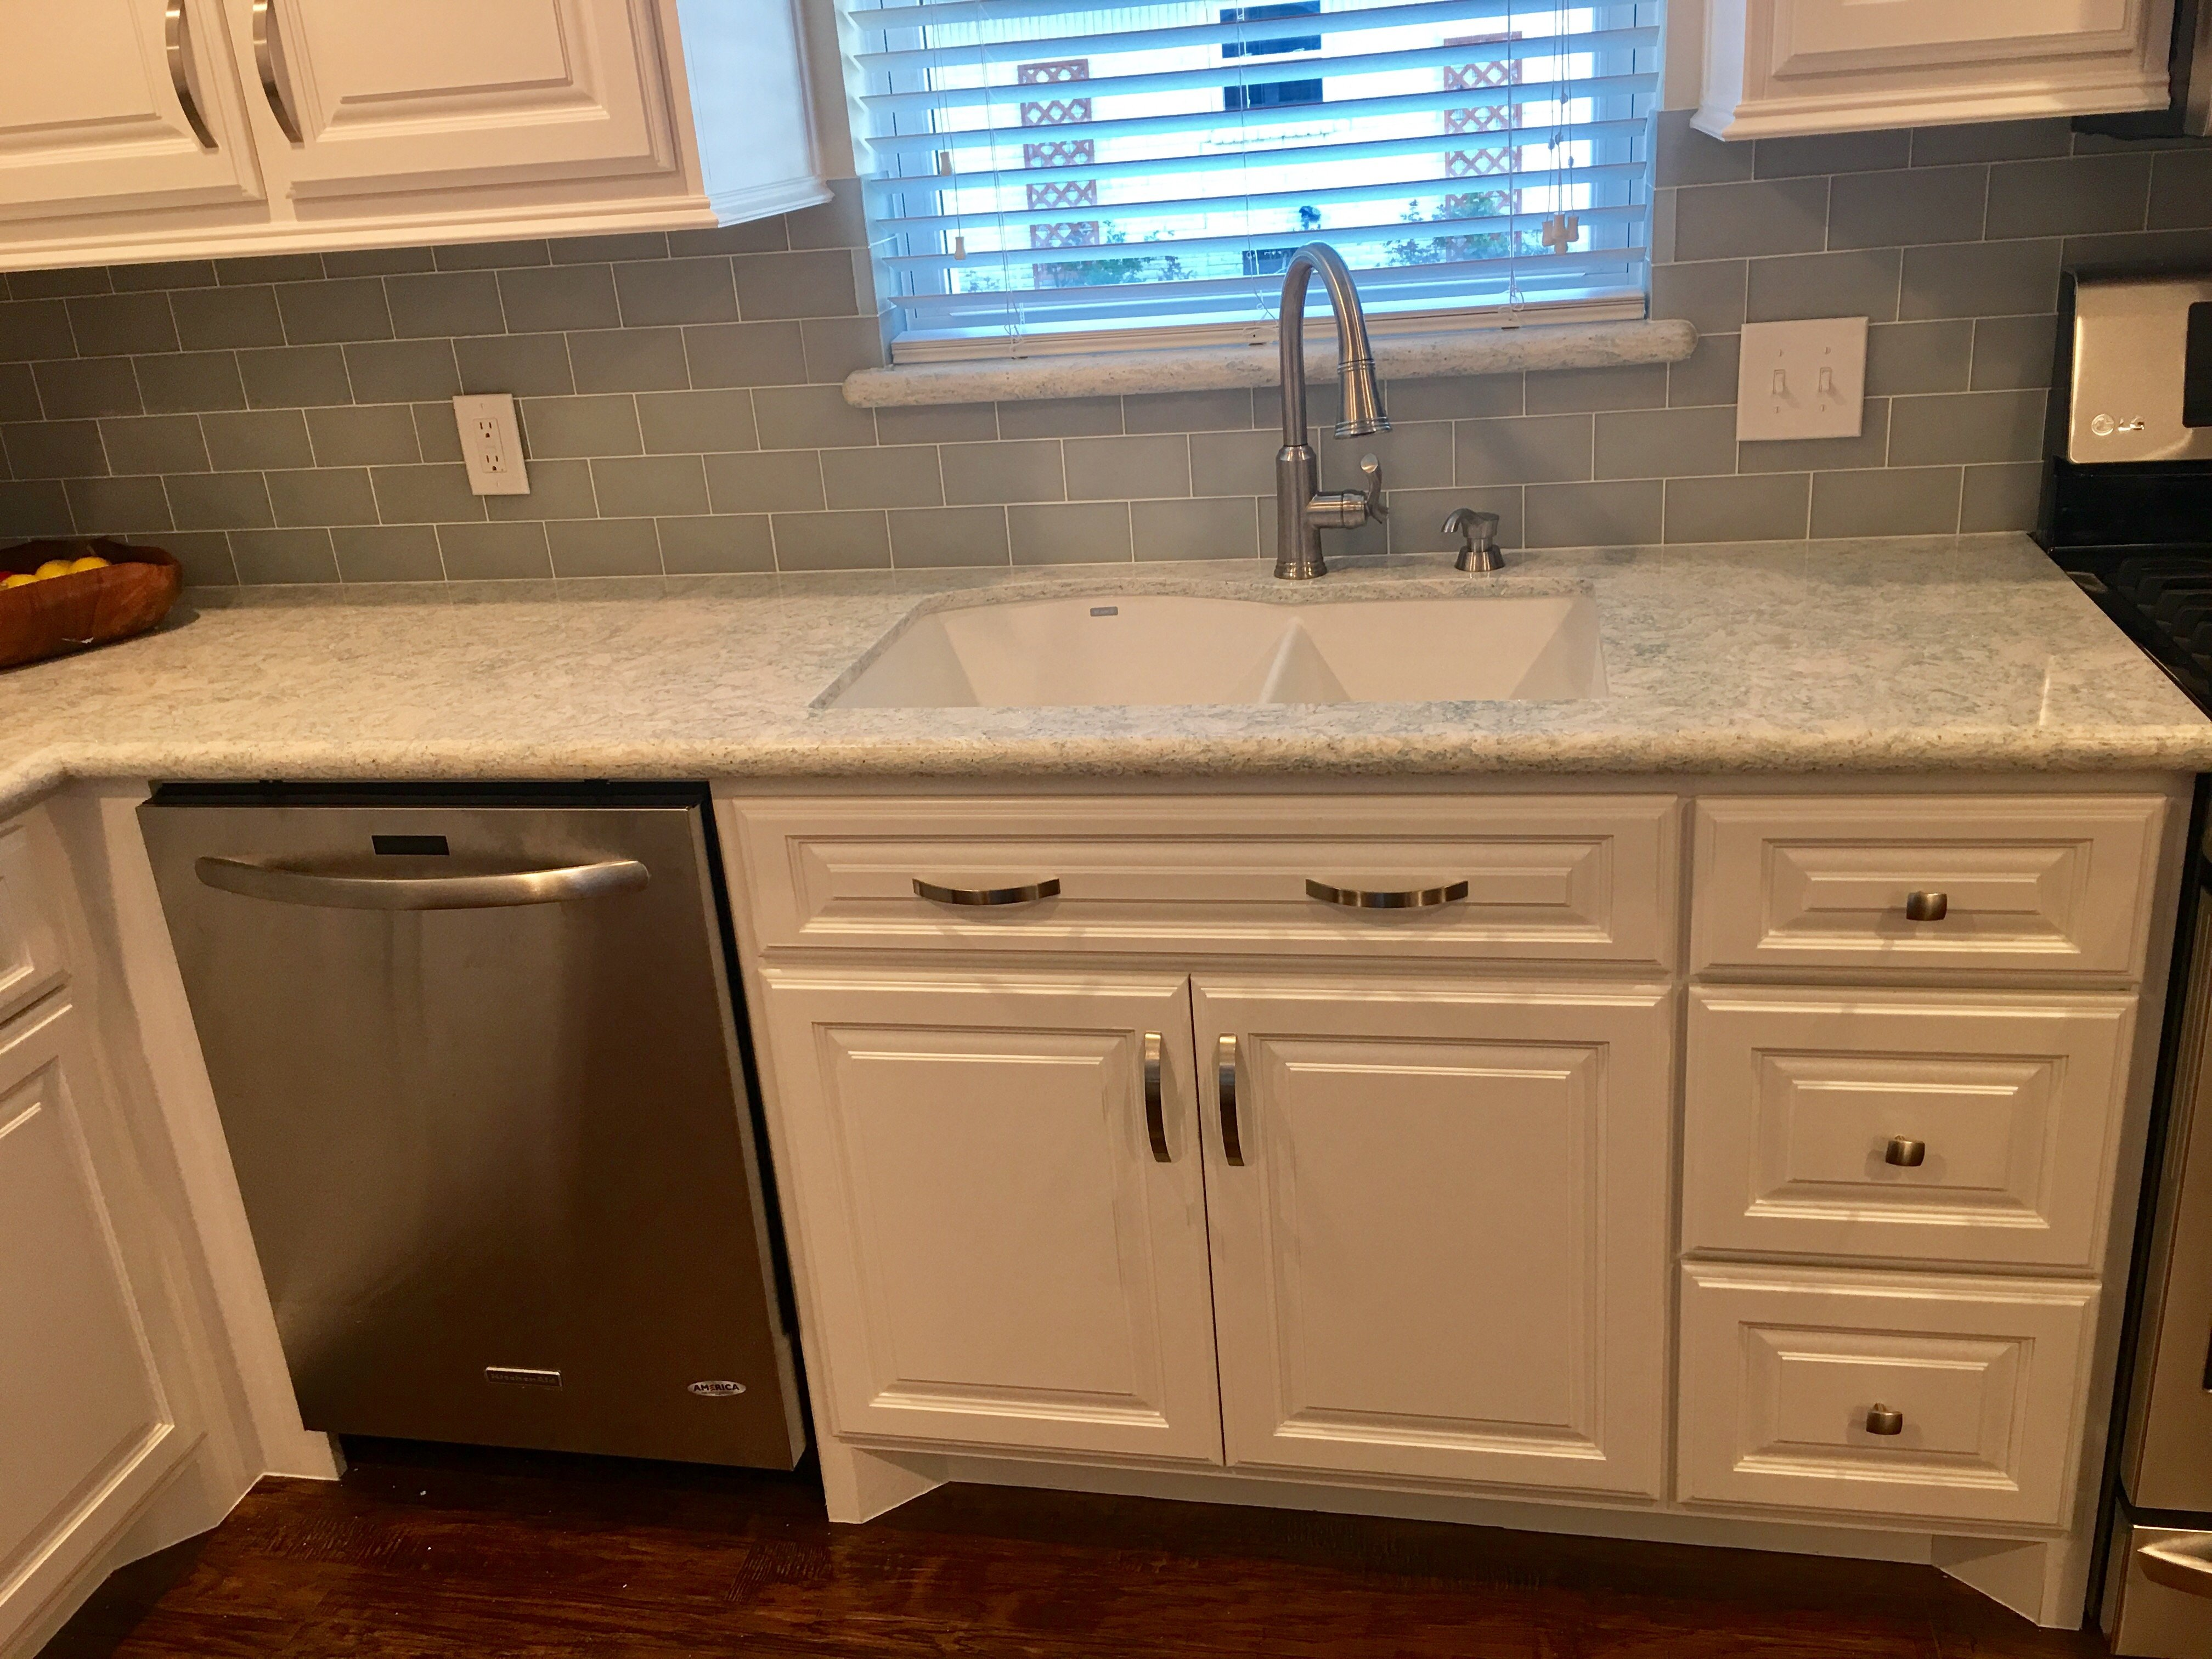 kitchen countertops and sink after